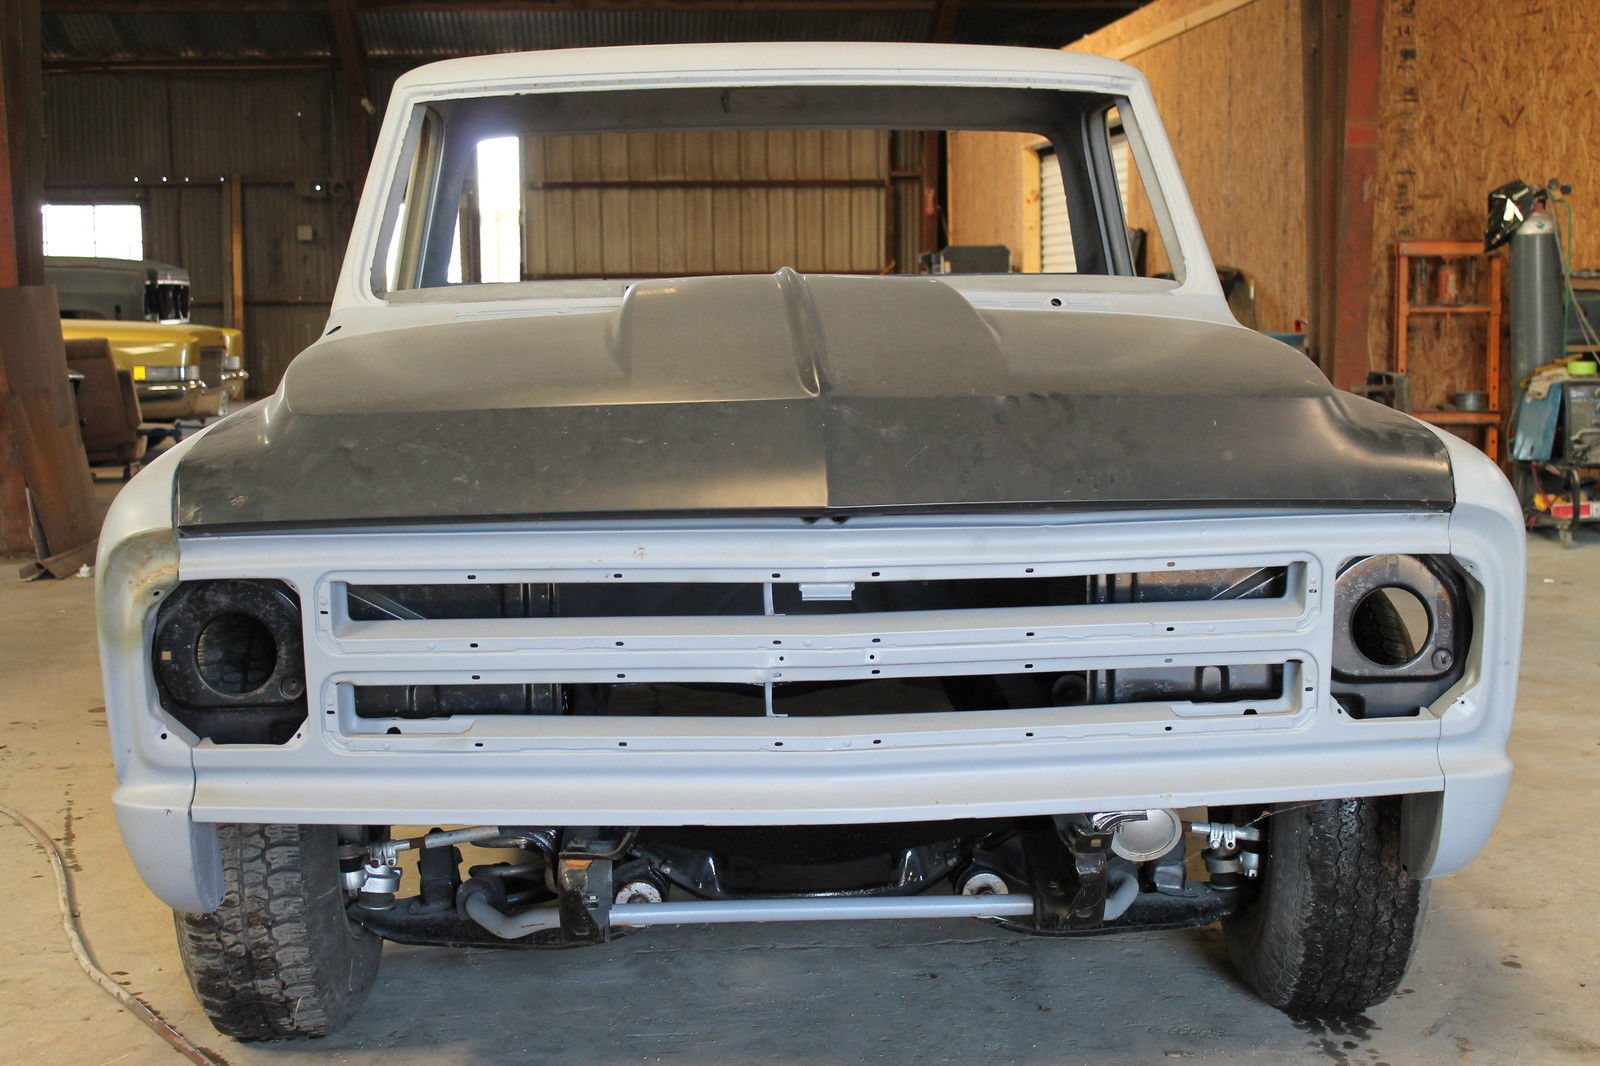 1967 c10 swb project chevy pickup for sale in New Iberia ...